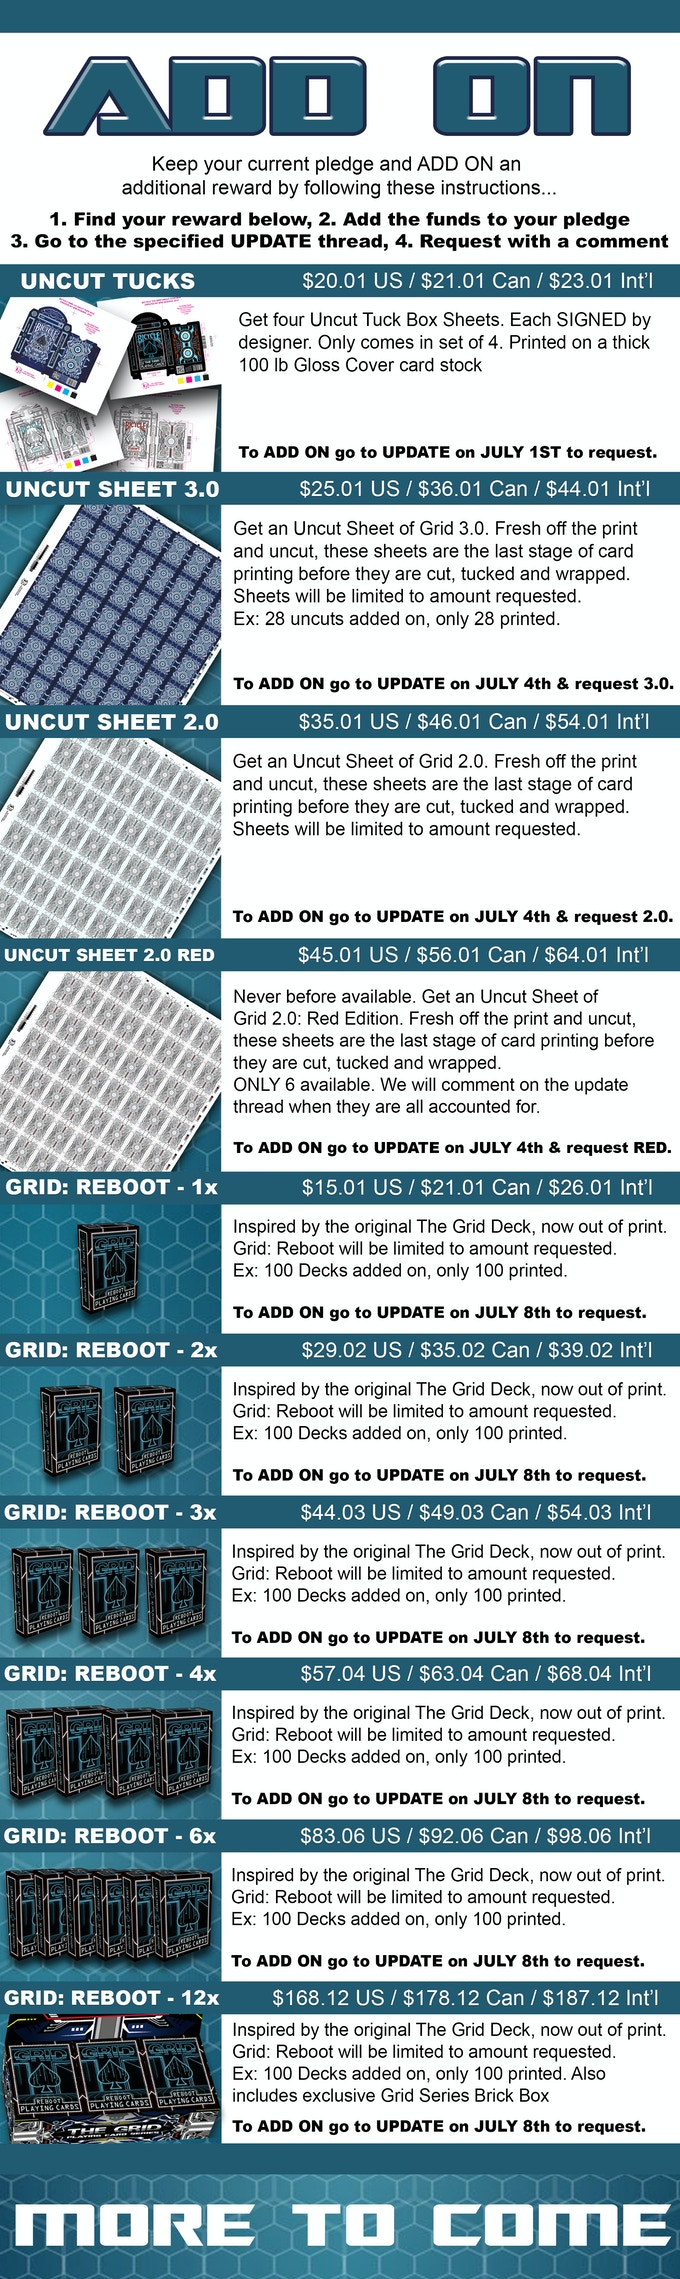 GRID 3 0 & GRID: REBOOT Playing Cards by 4PM DESIGNS